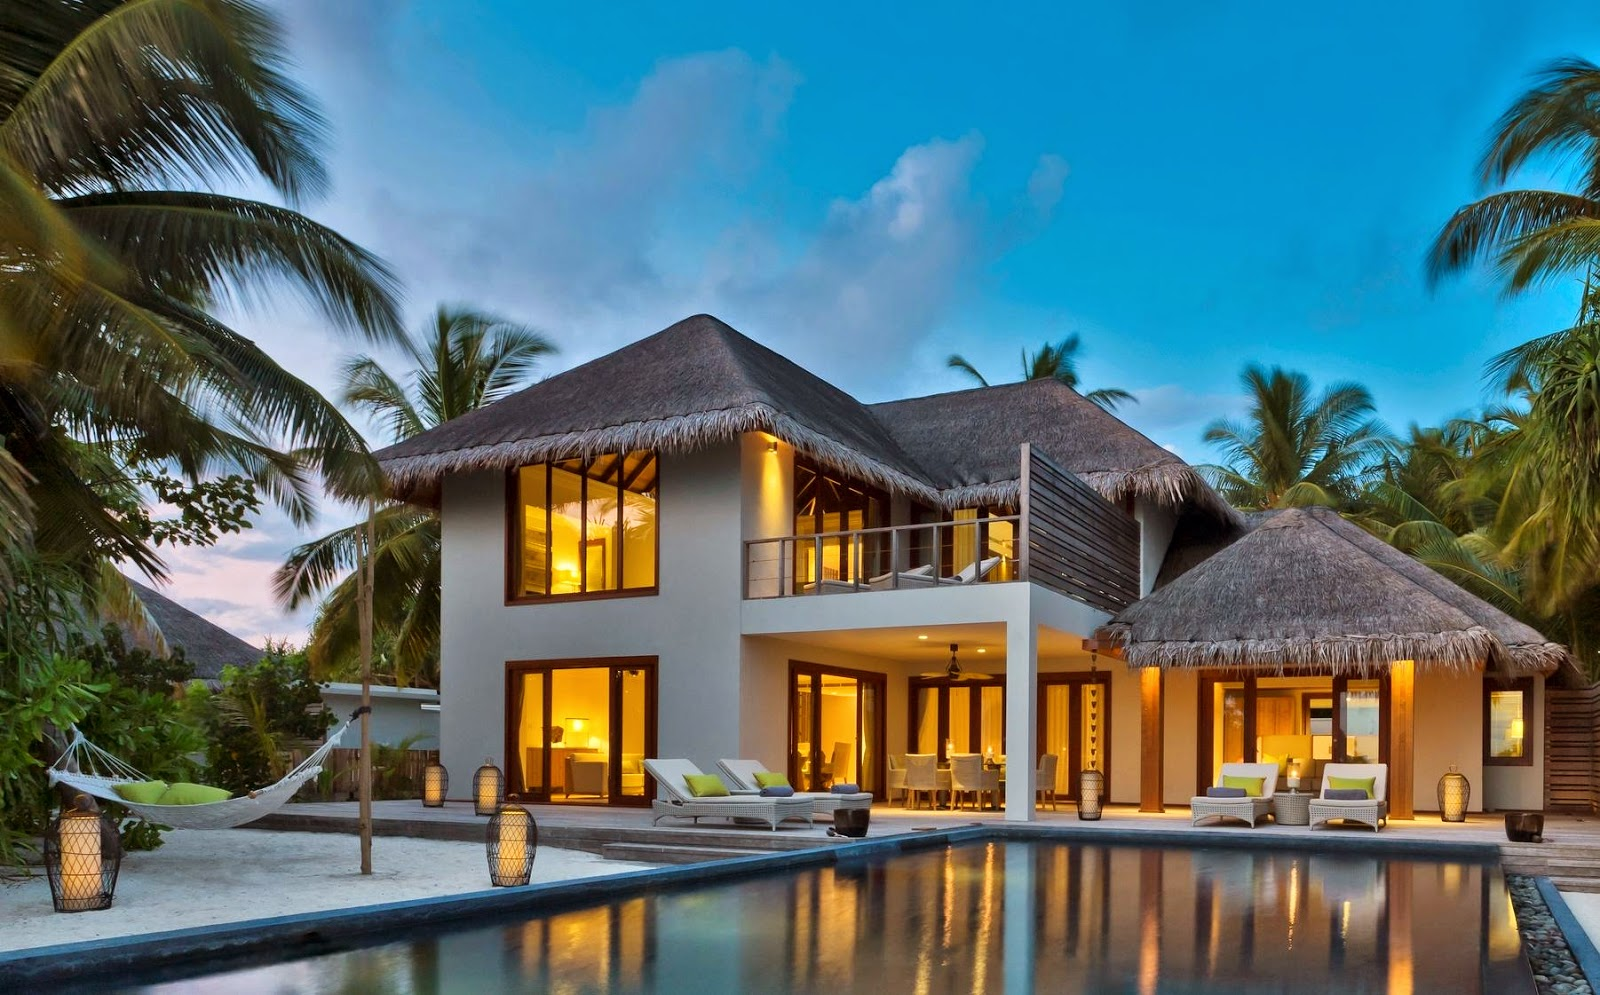 Dusit Thani Maldives offers luxury 3-bedroom residence